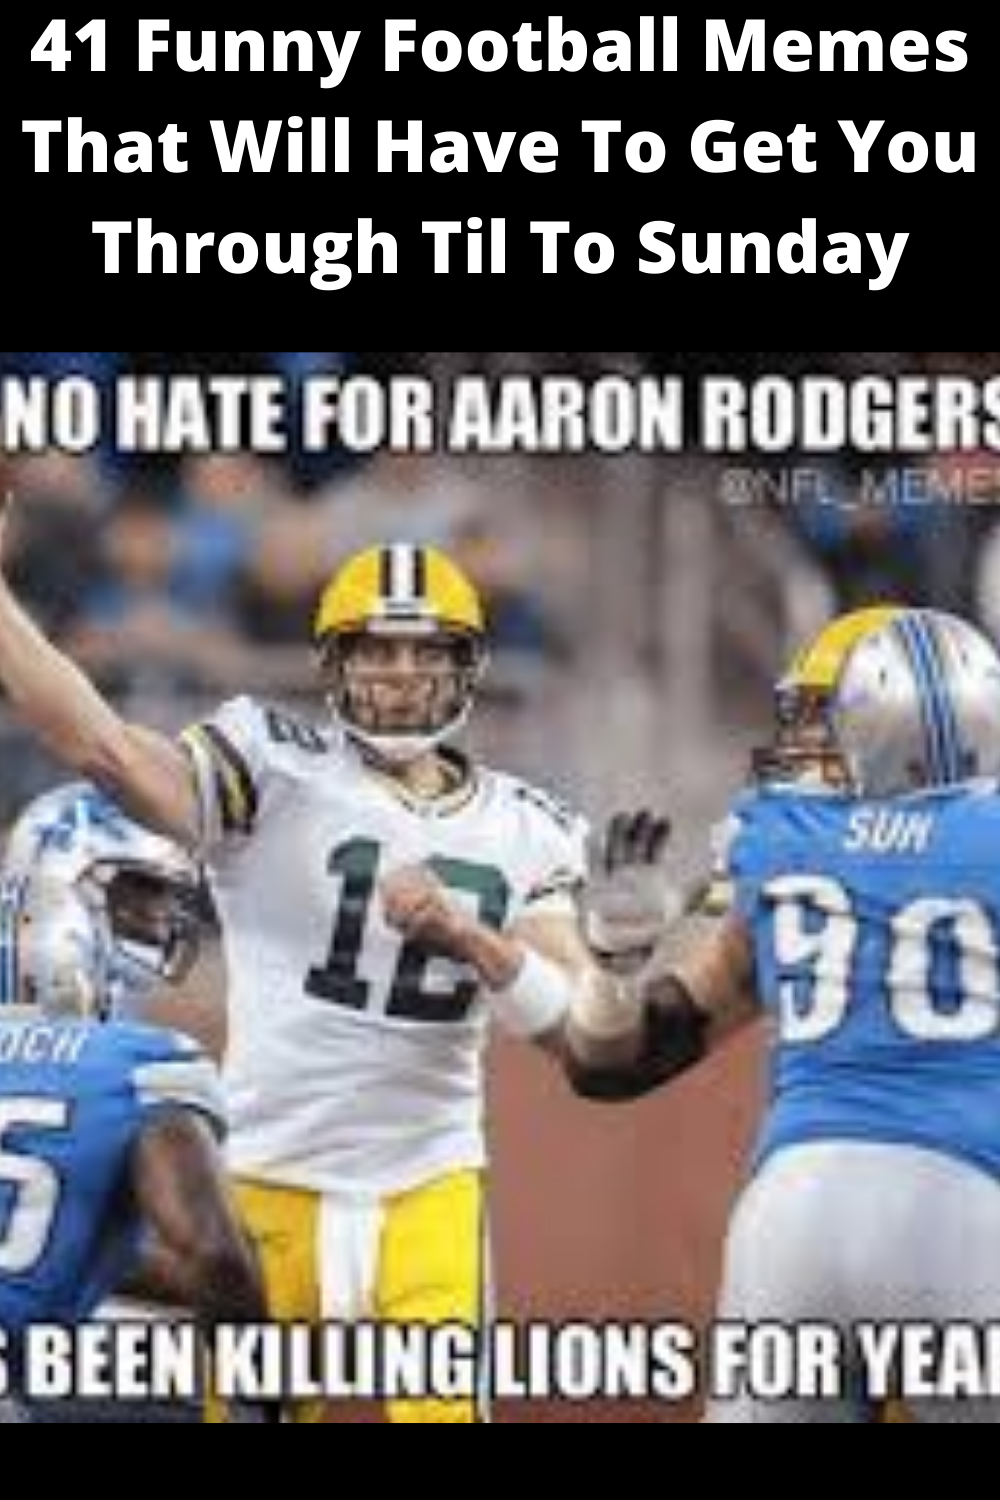 41 Funny Football Memes That Will Have To Get You Through Til To Sunday Funny Football Memes Football Funny Football Memes